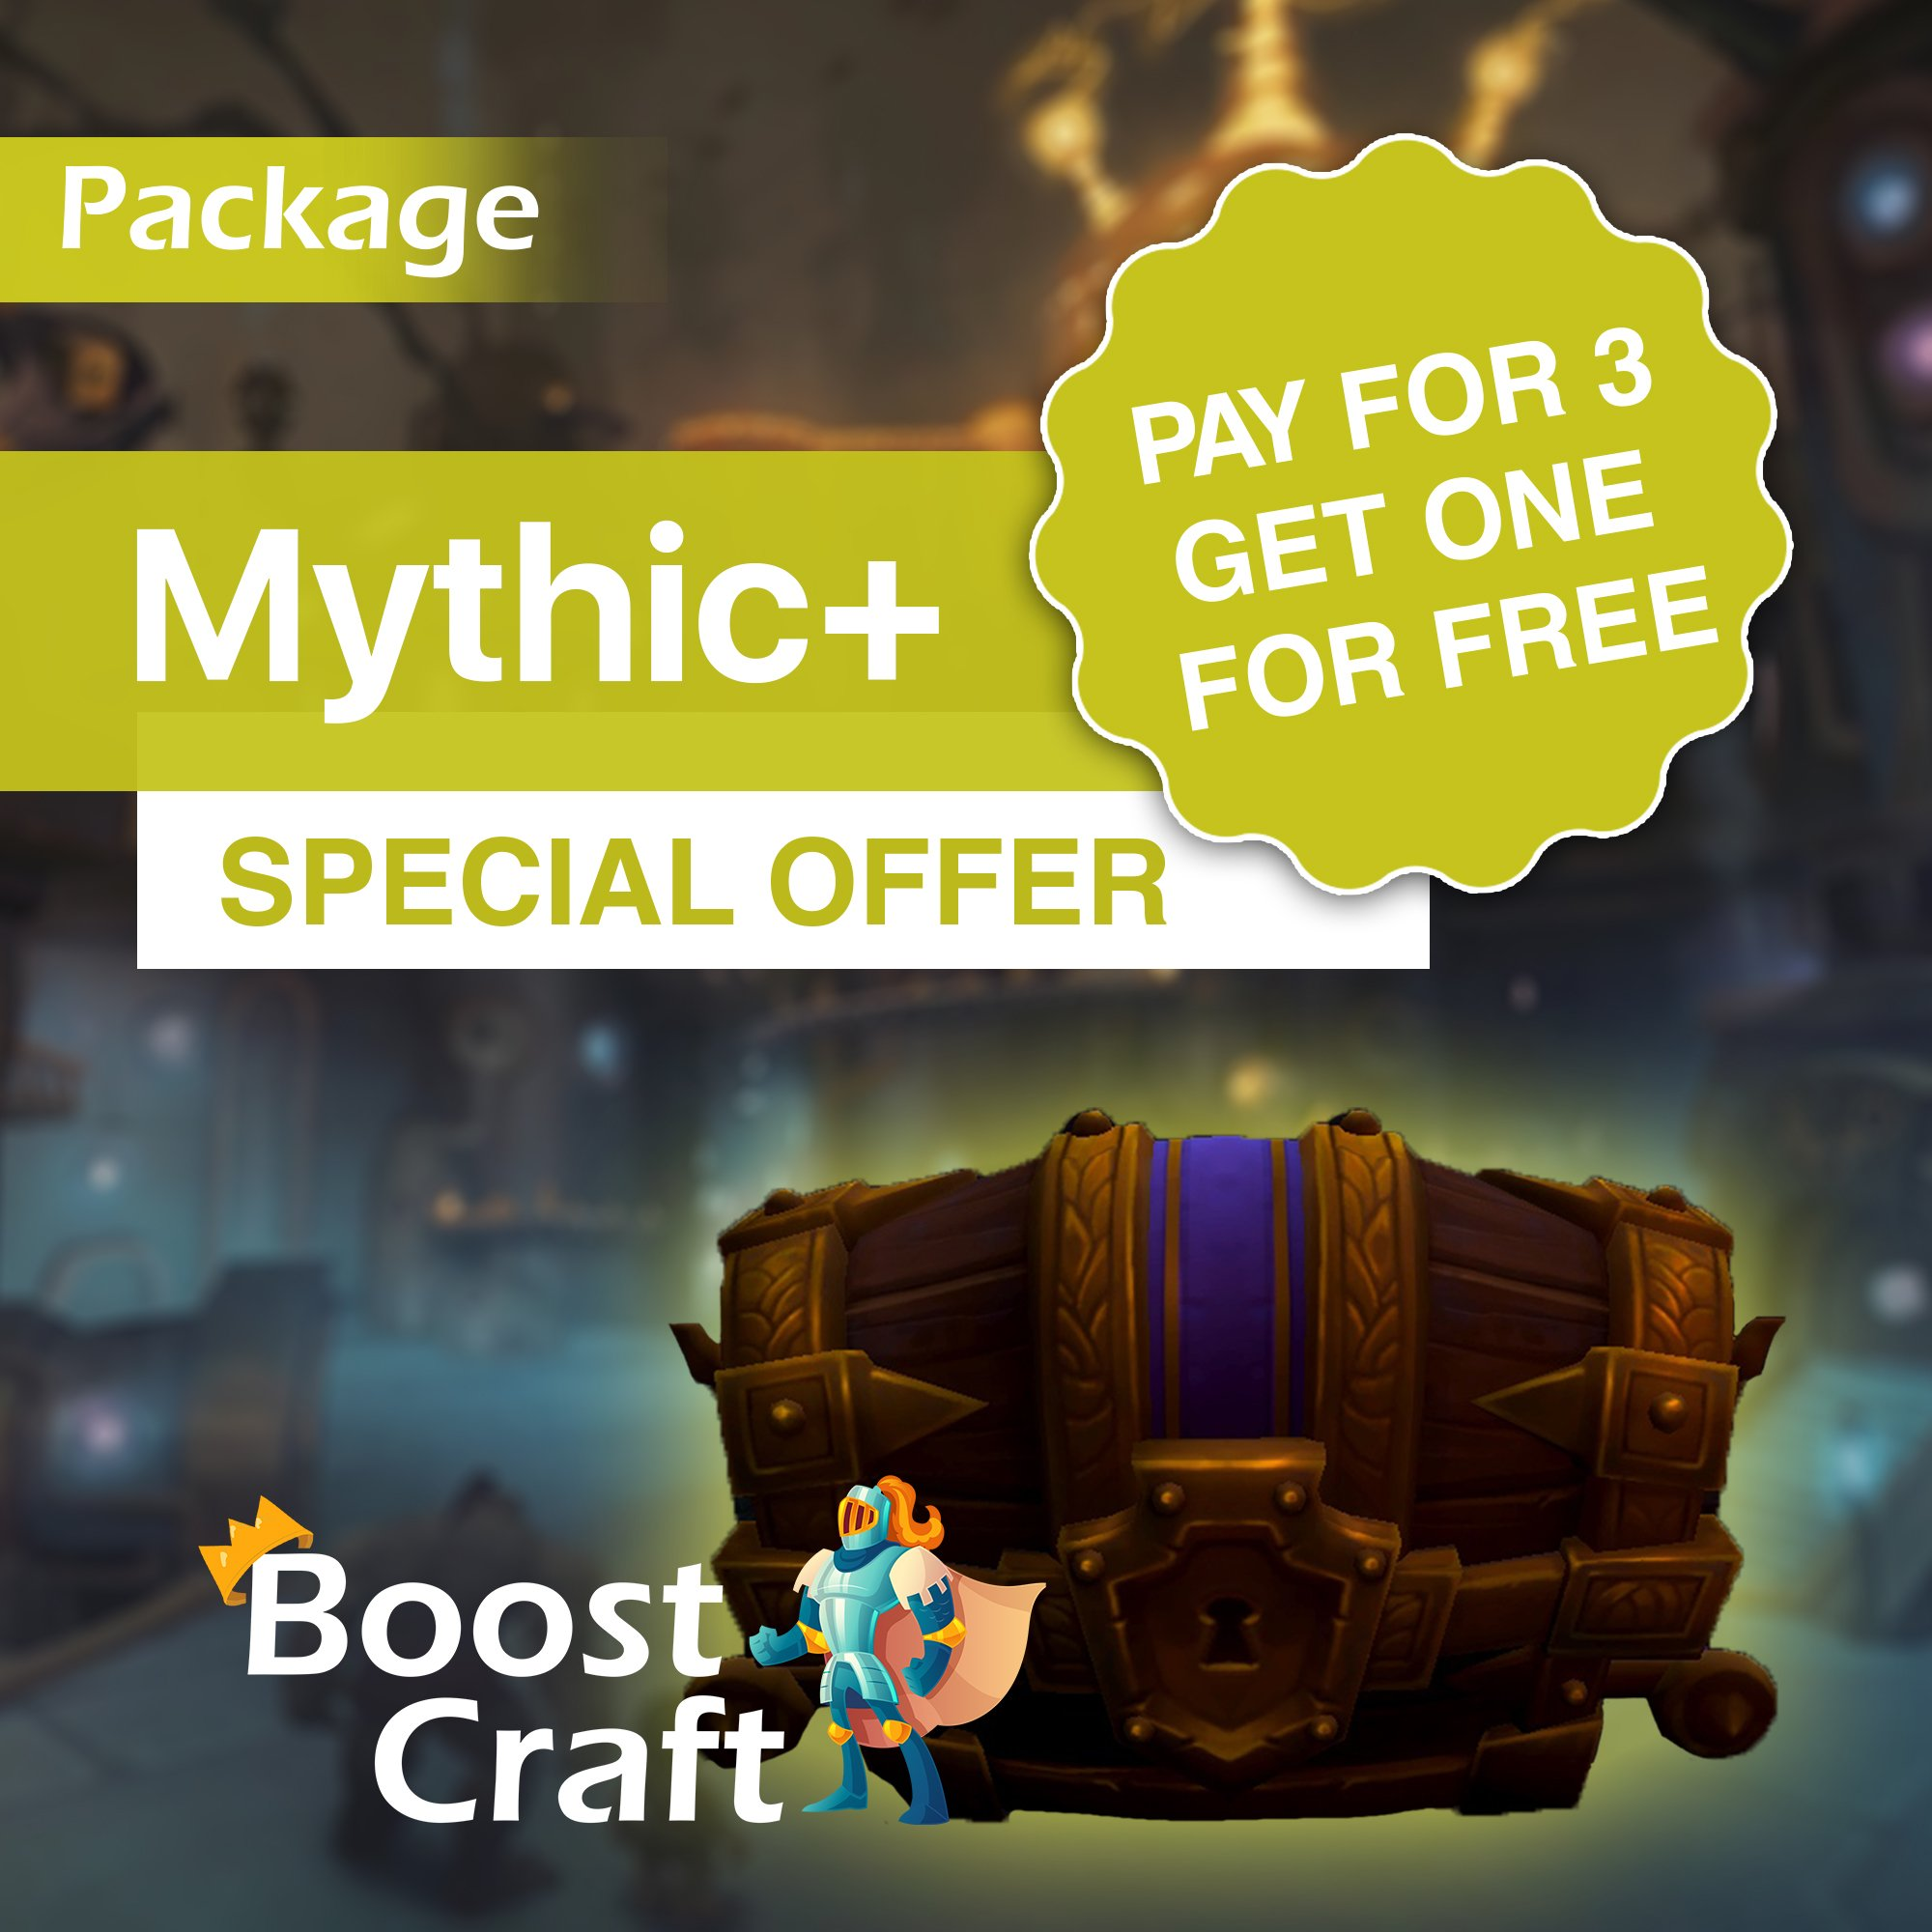 Pay for THREE get ONE FREE – Mythic+ Special PACKAGE